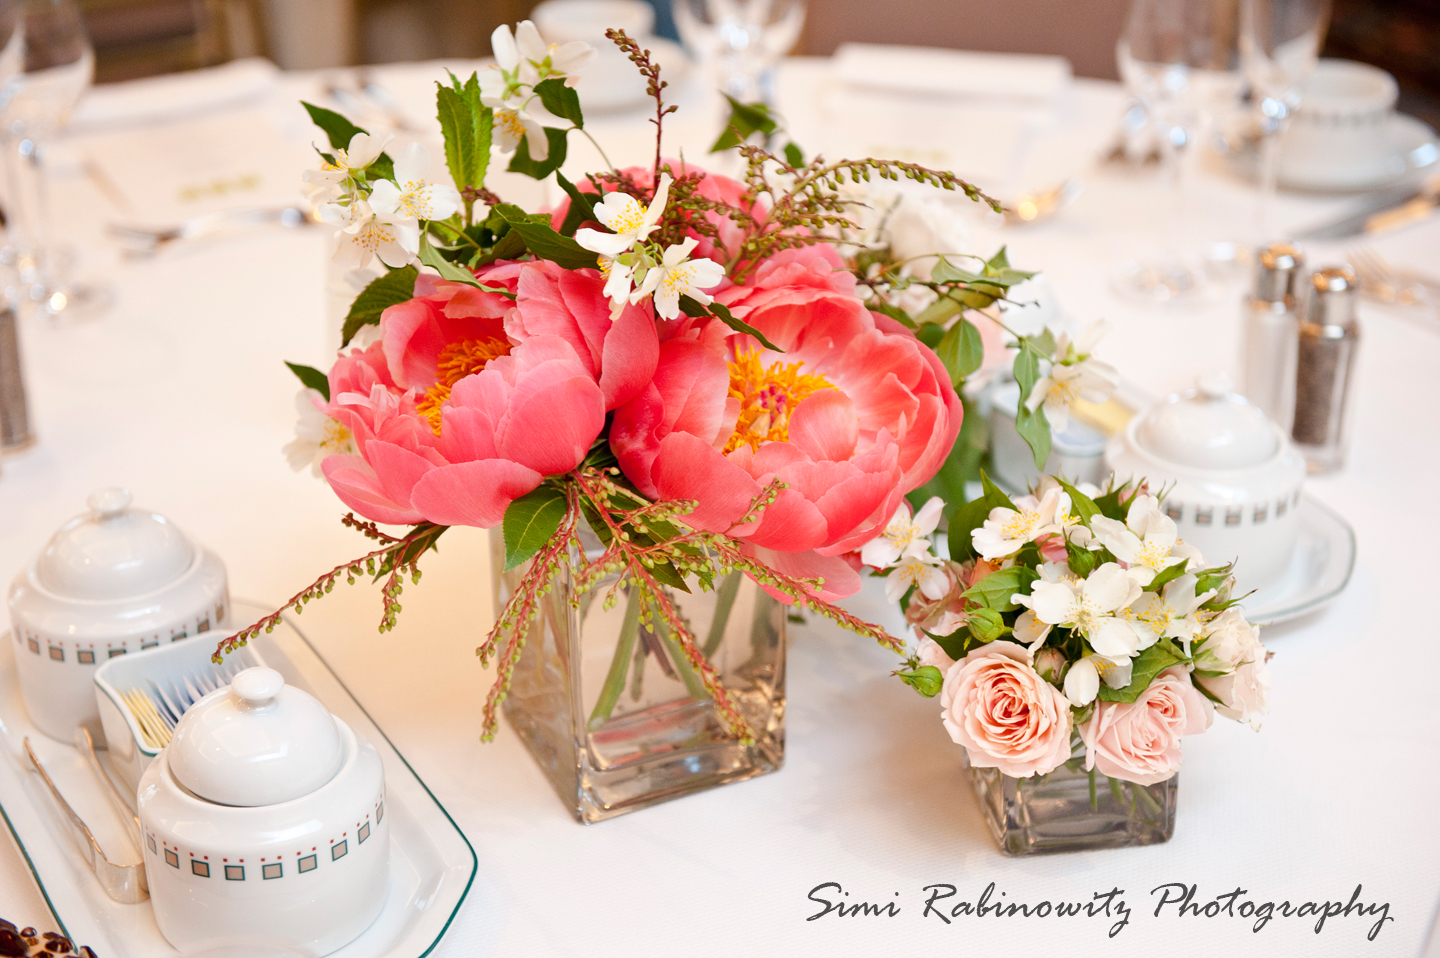 Petalena Creative Designs for Weddings and Special Events  Flowers  musings on beautiful things